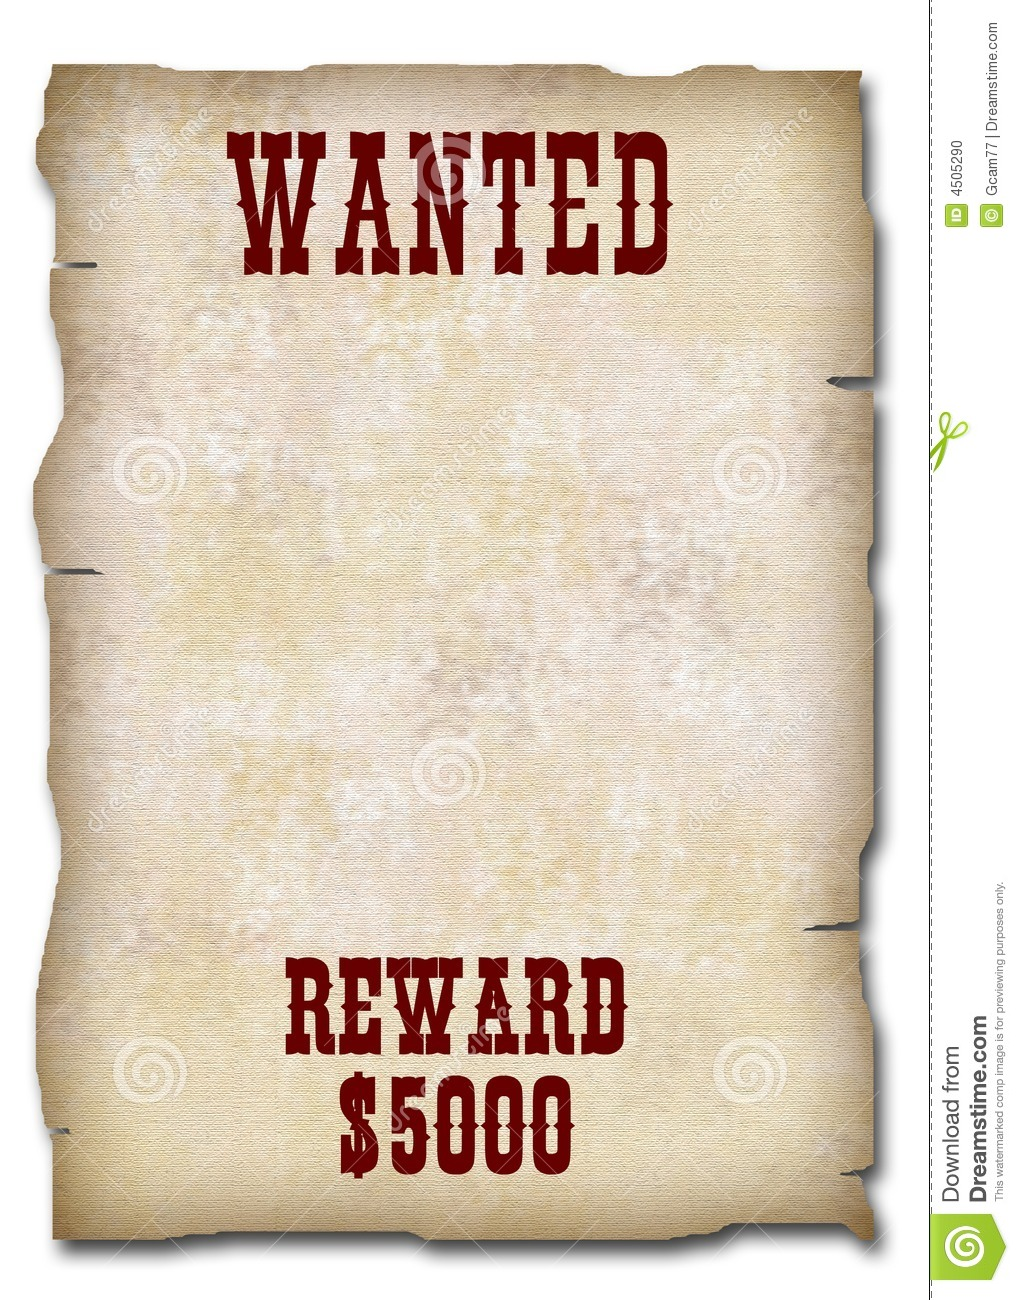 Old West Style Wanted Poster